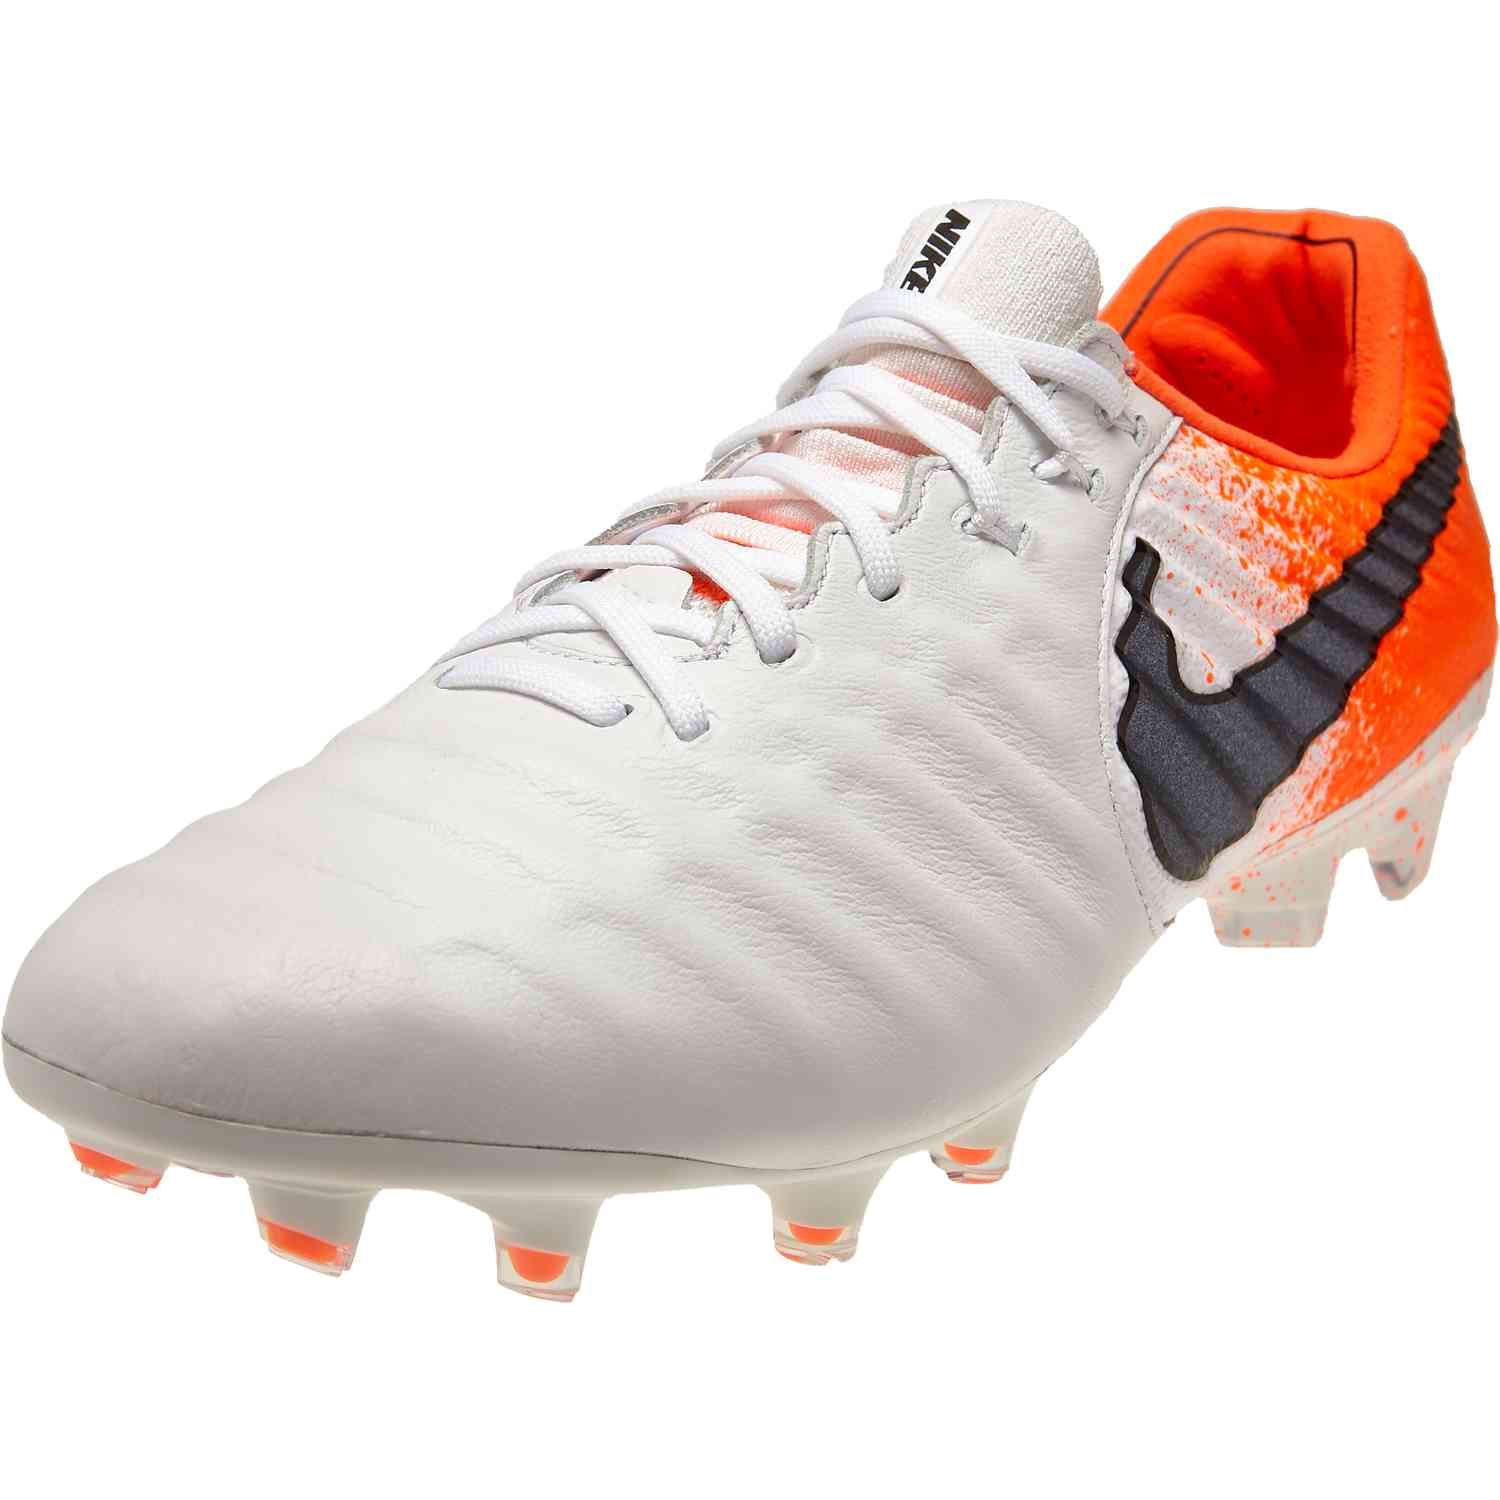 new product 25c9a ba849 Nike Tiempo Legend 7 Elite FG – Euphoria Pack